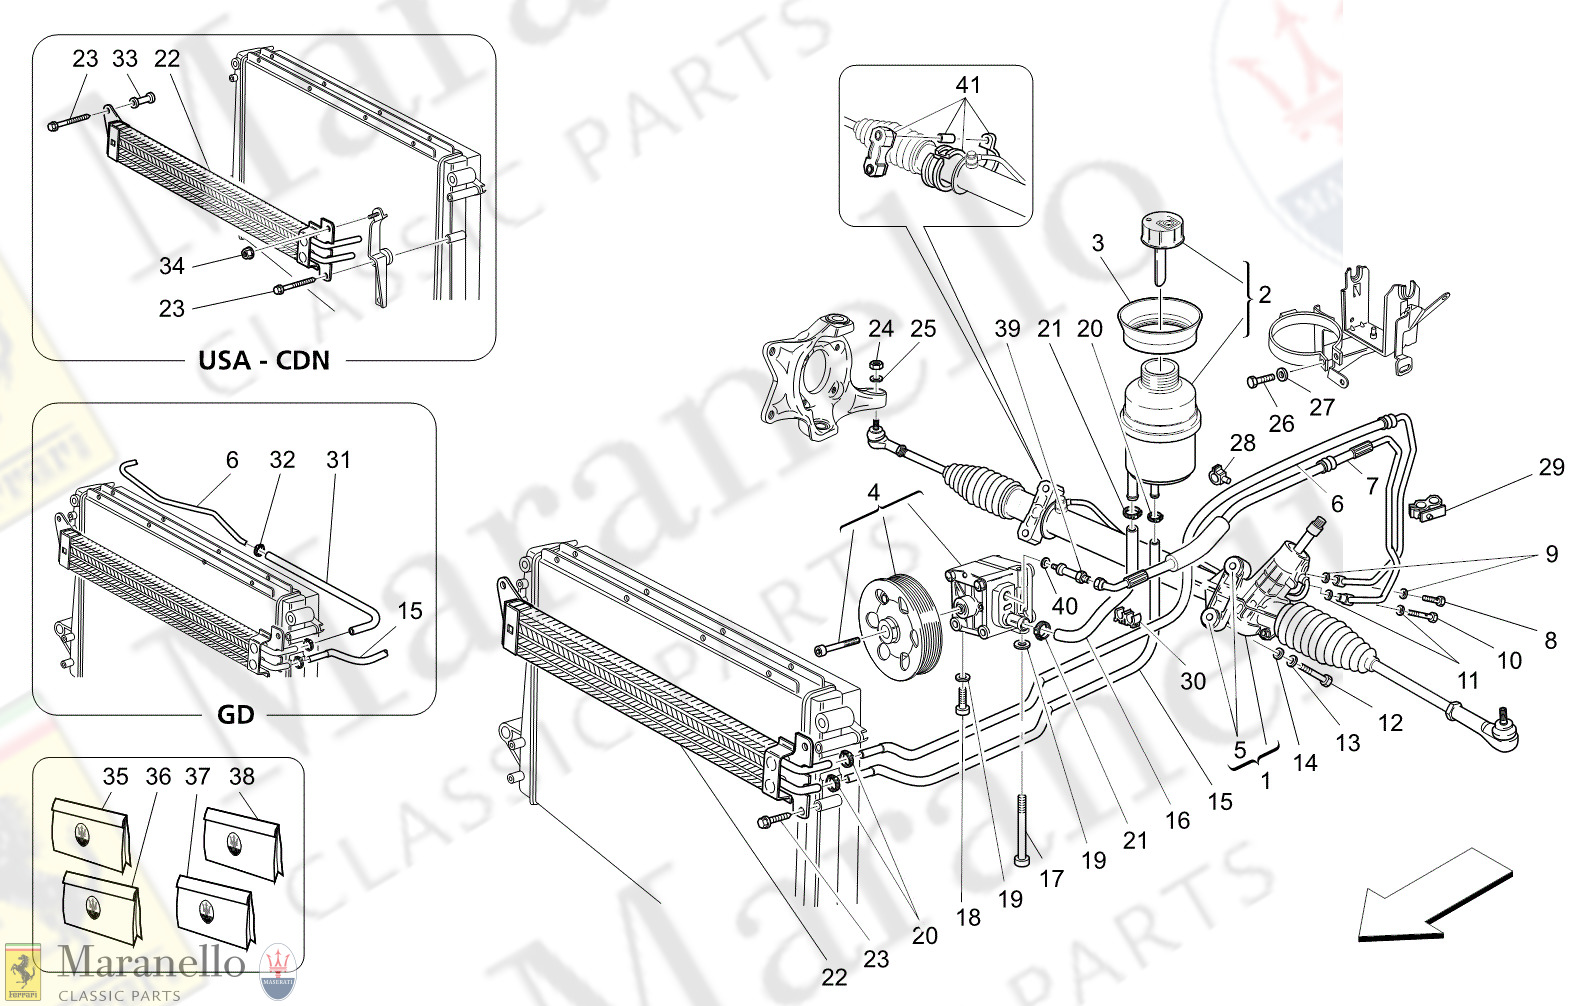 M5.10 - 14 - M510 - 14 Steering Rack And Hydraulic Steering Pump